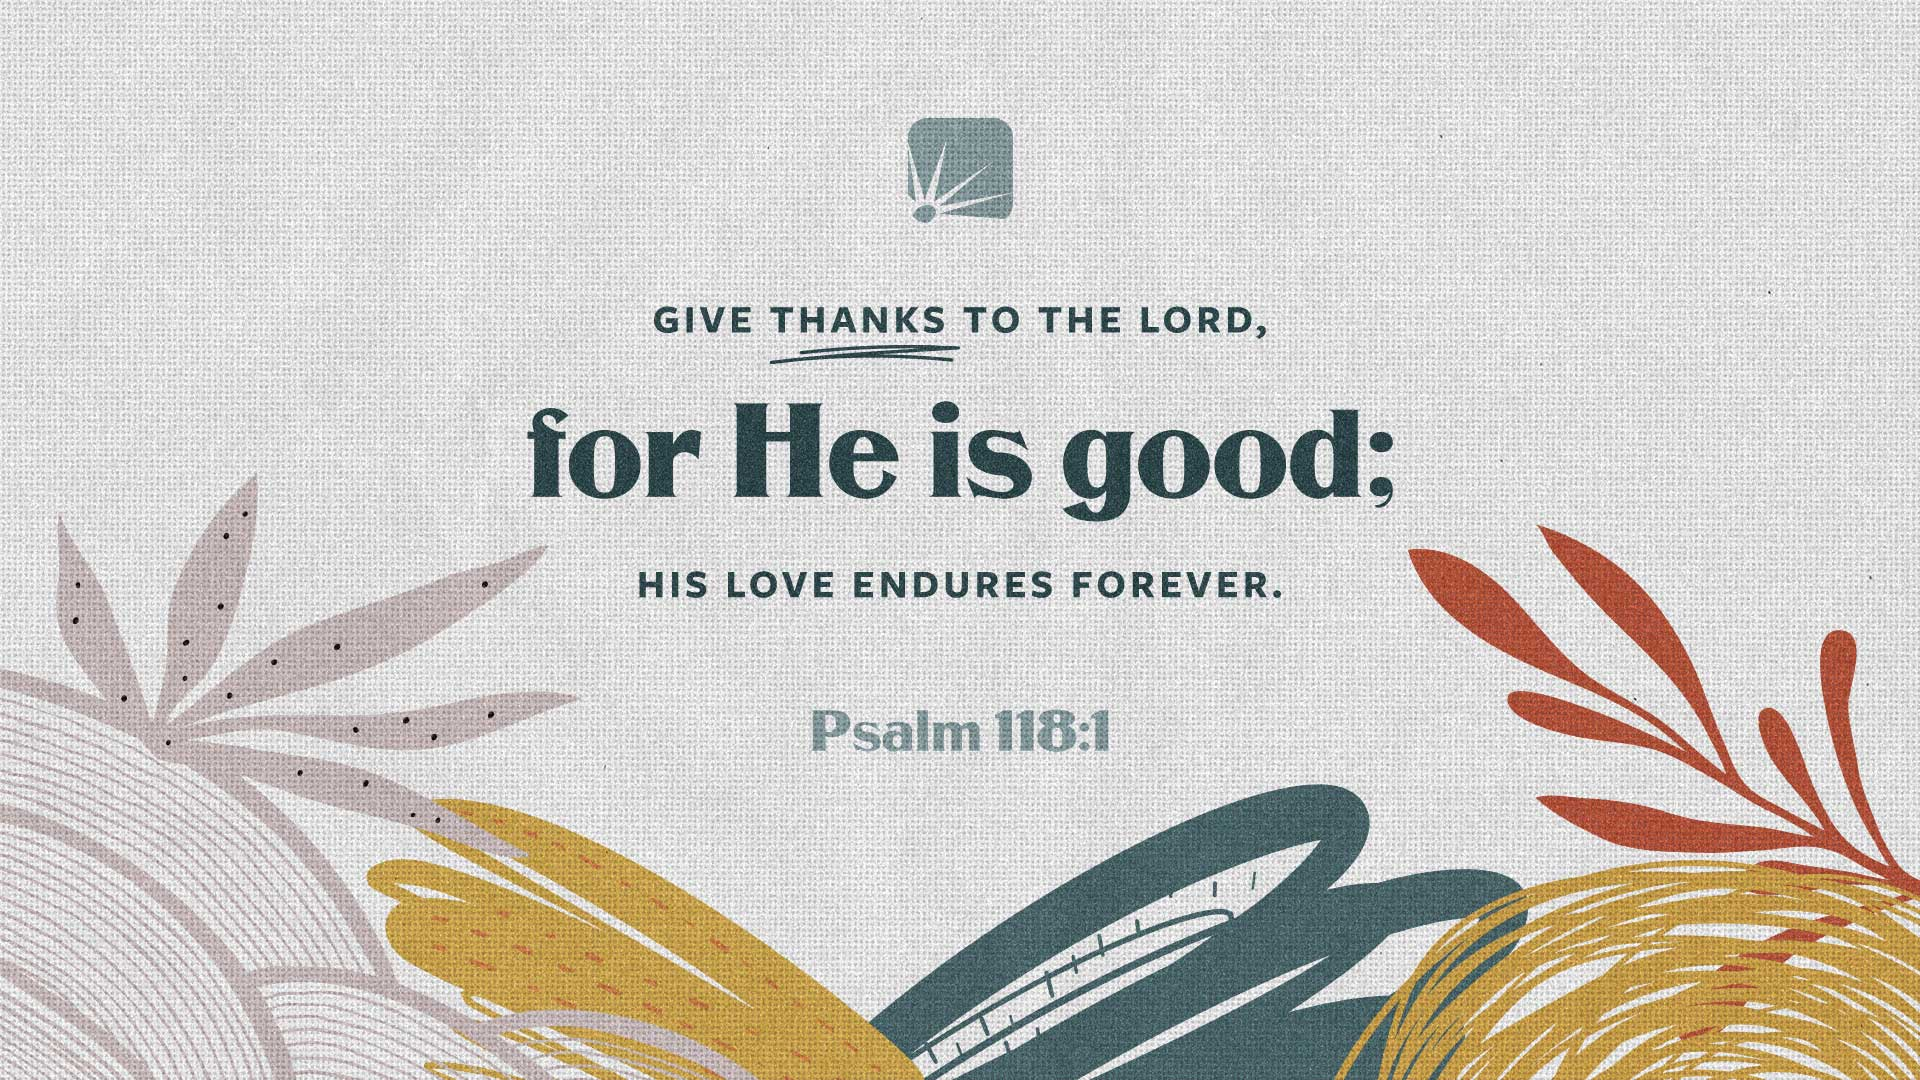 scripture: Give thanks to theLord, for He is good; His love endures forever. —Psalm 118:1 (NIV)